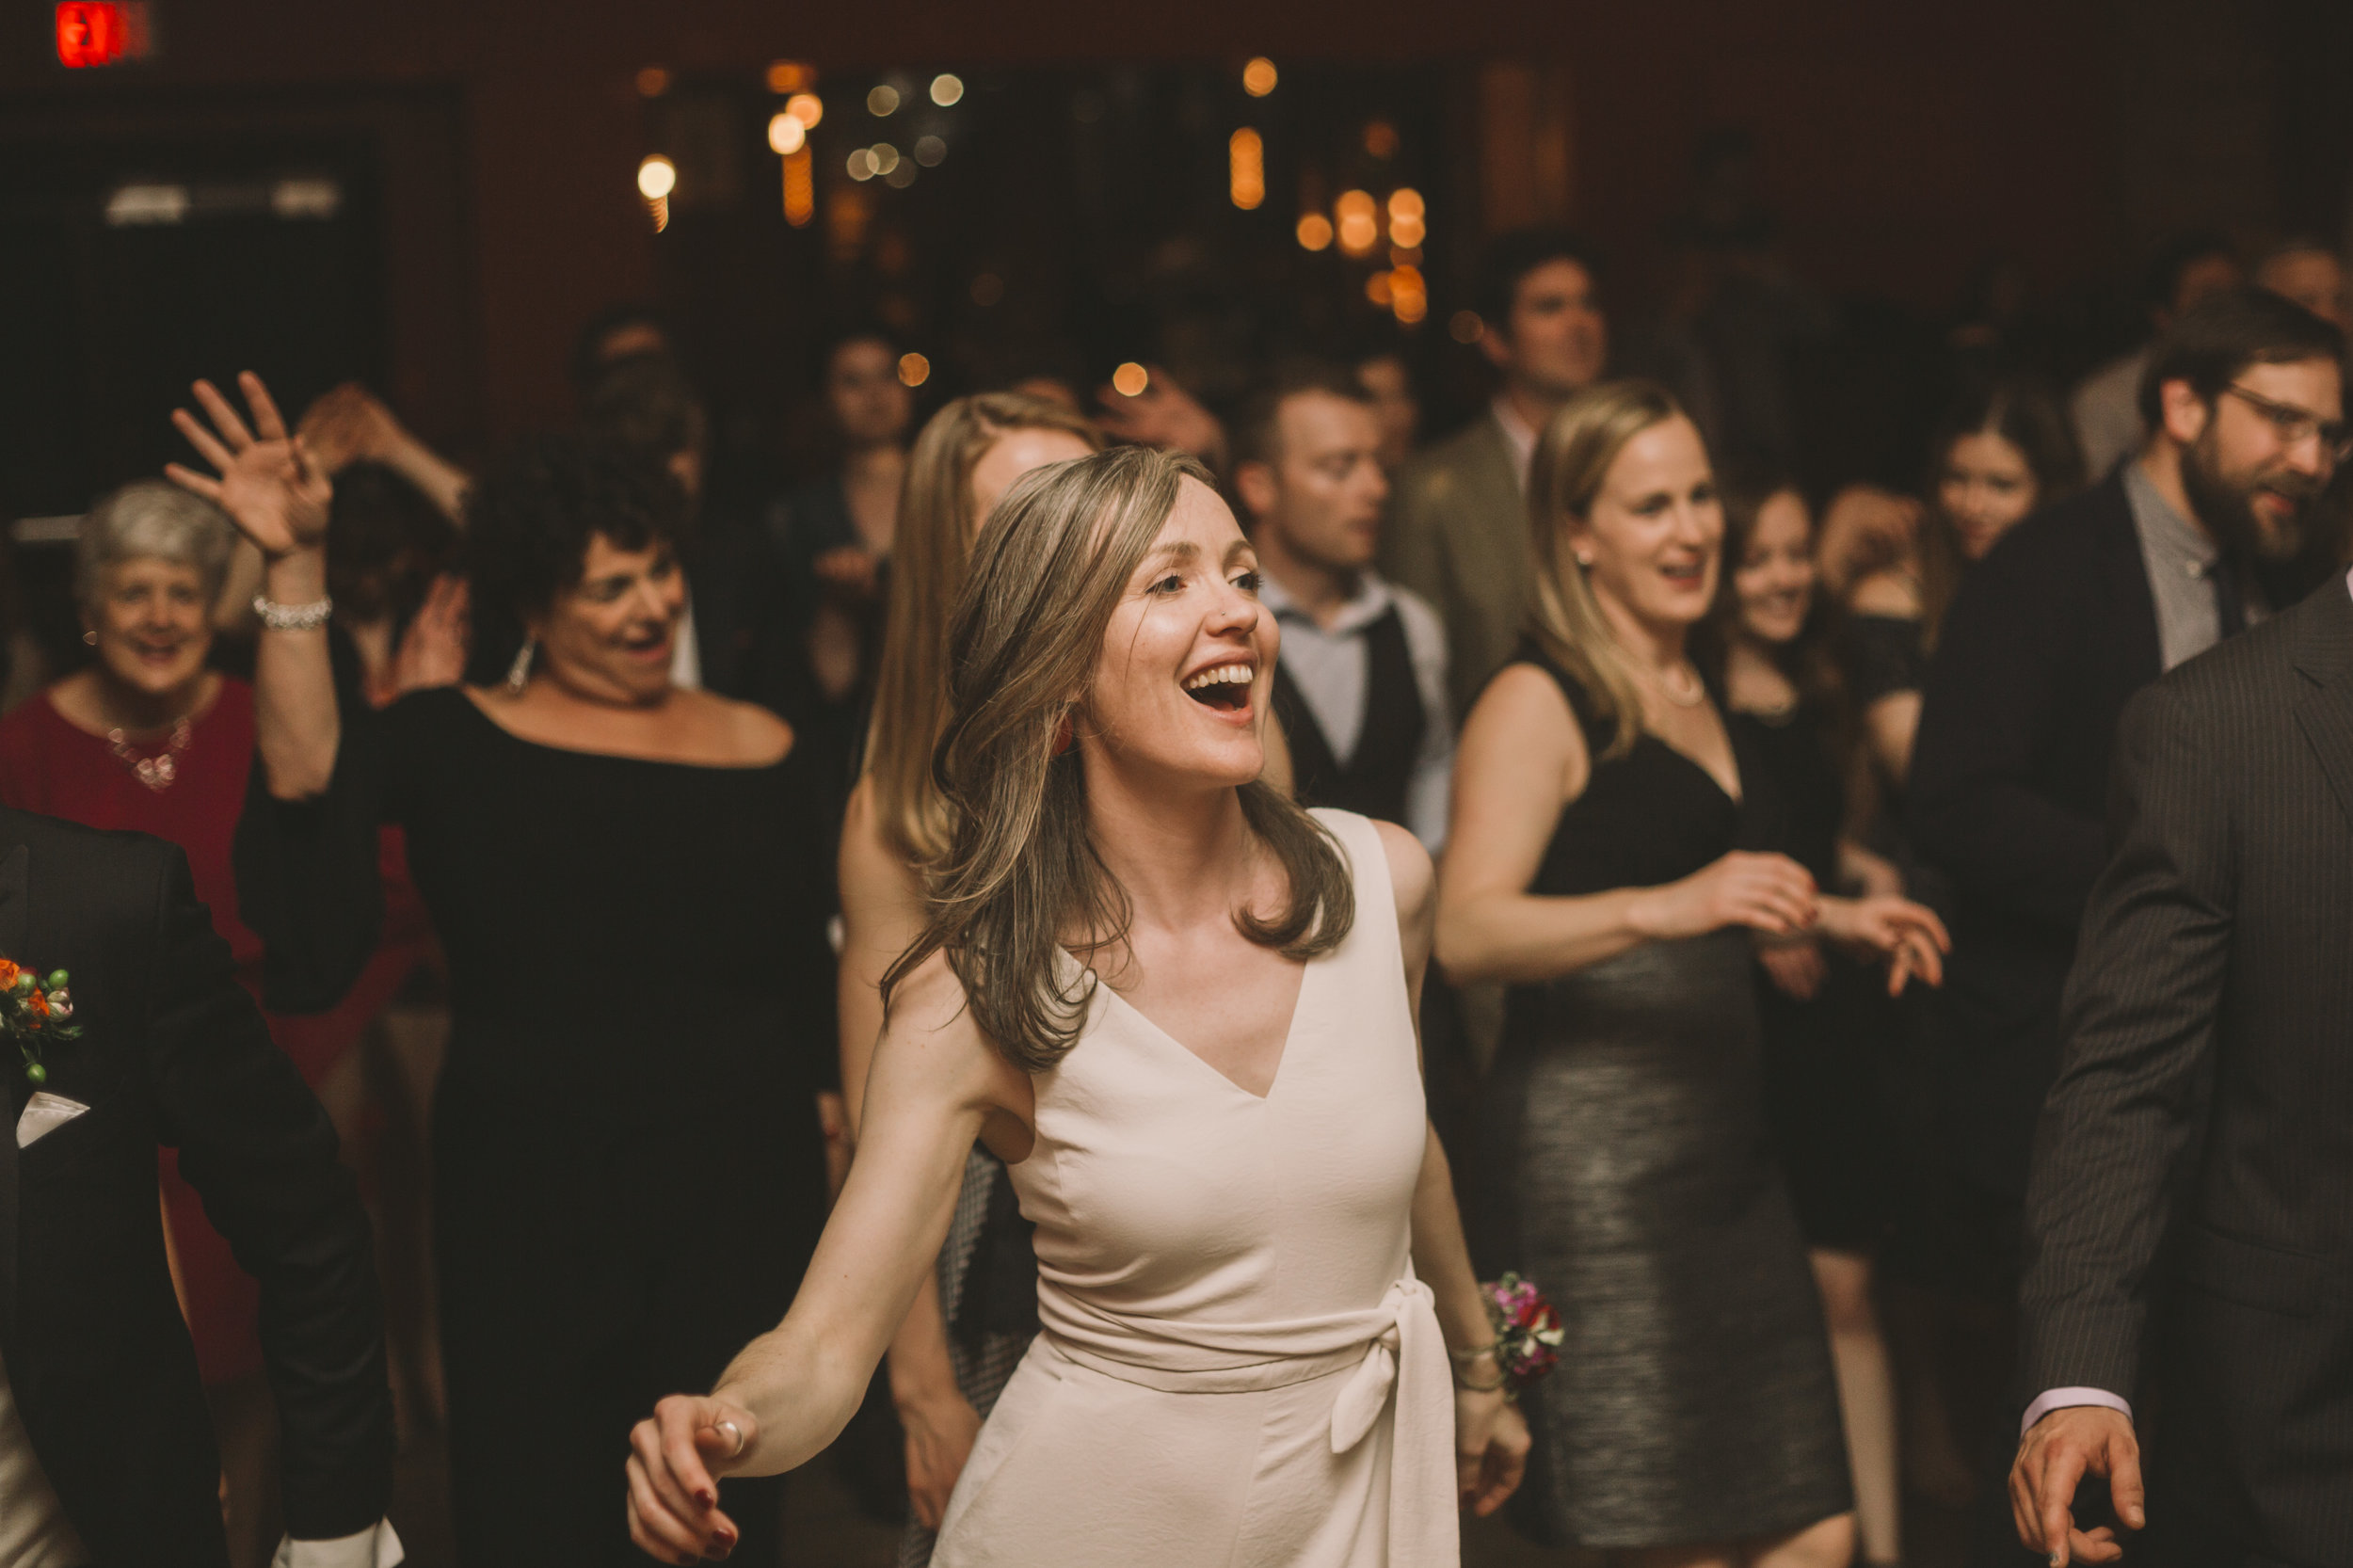 Dancing at the Gladstone Hotel